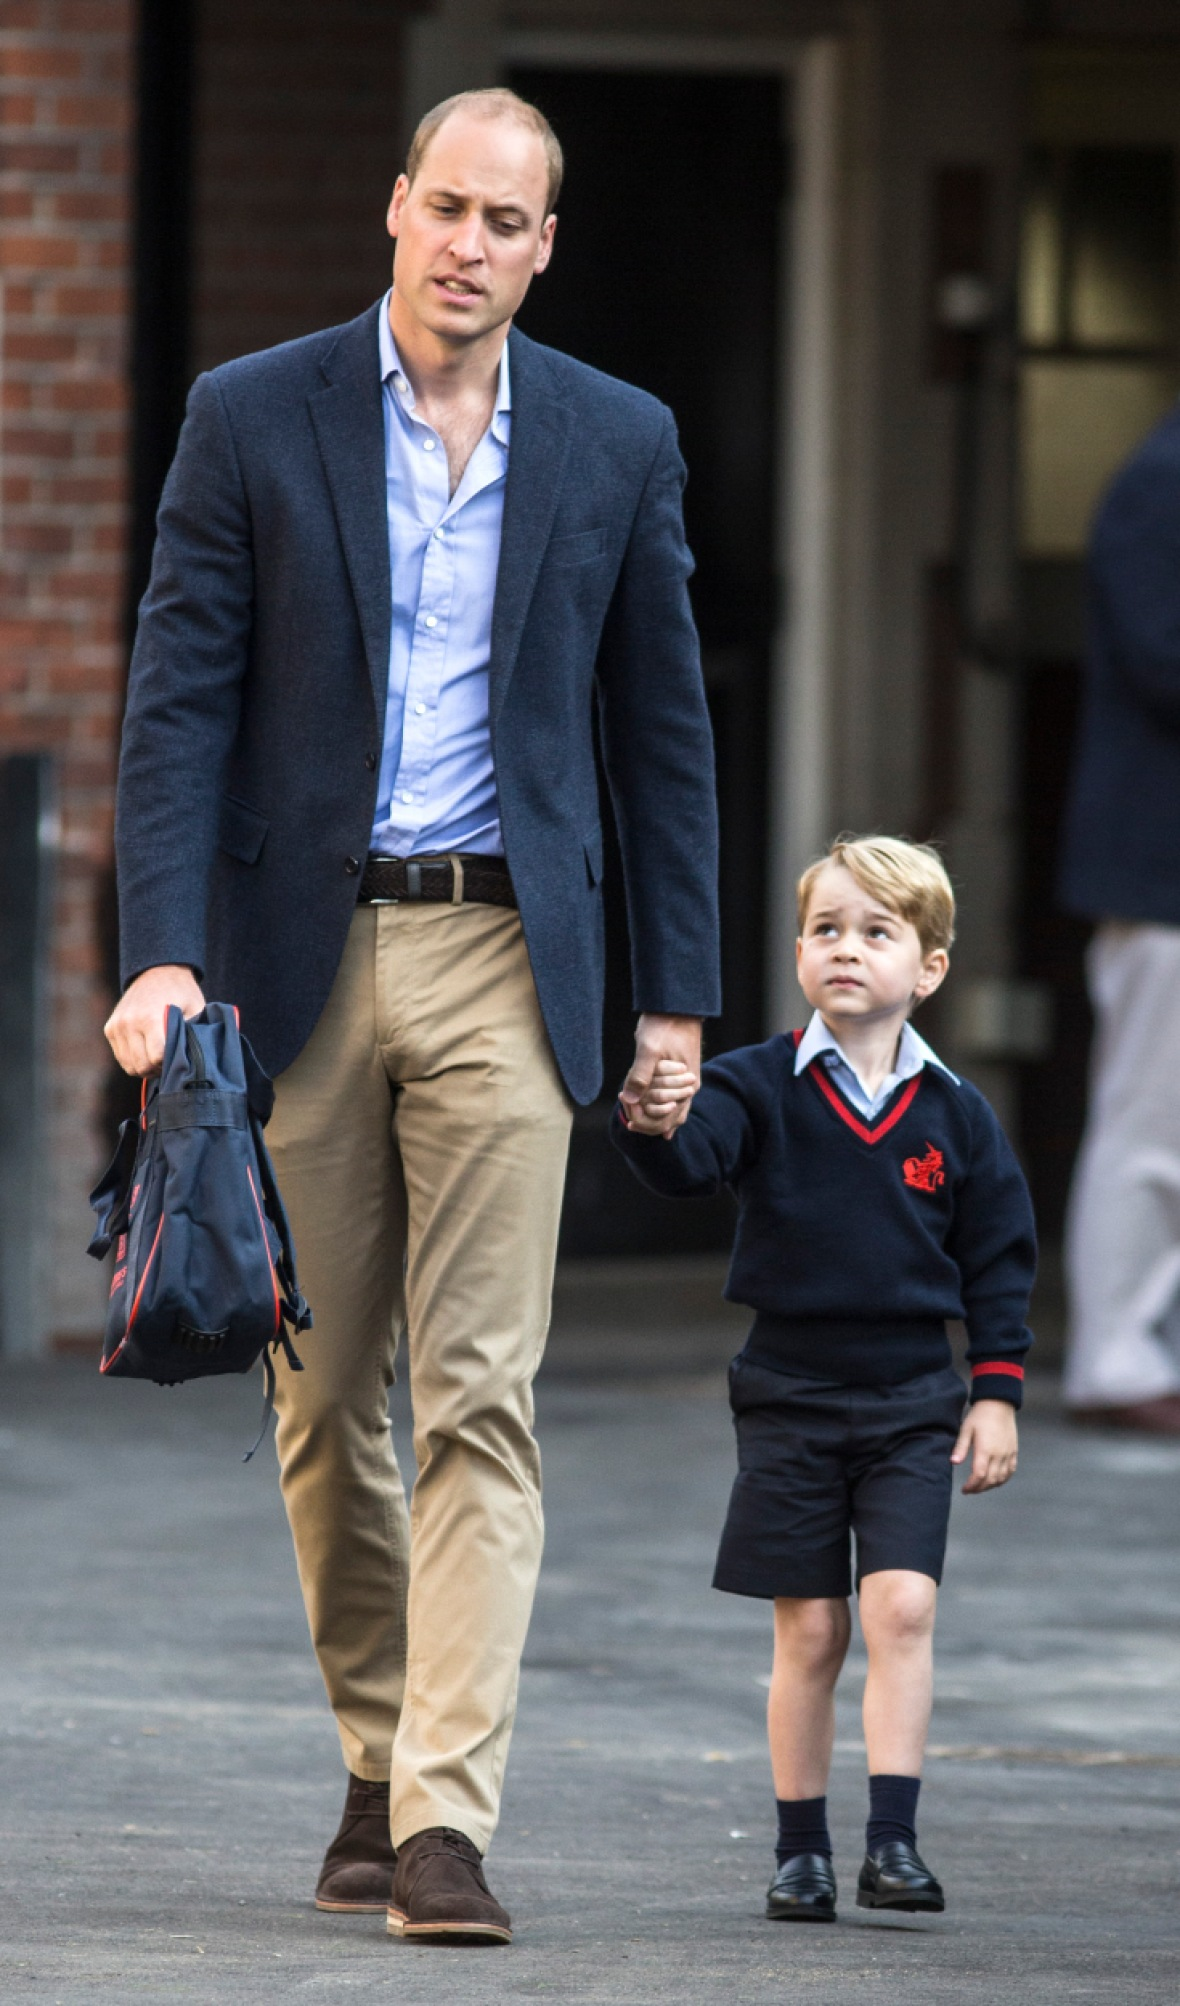 prince george school getty images